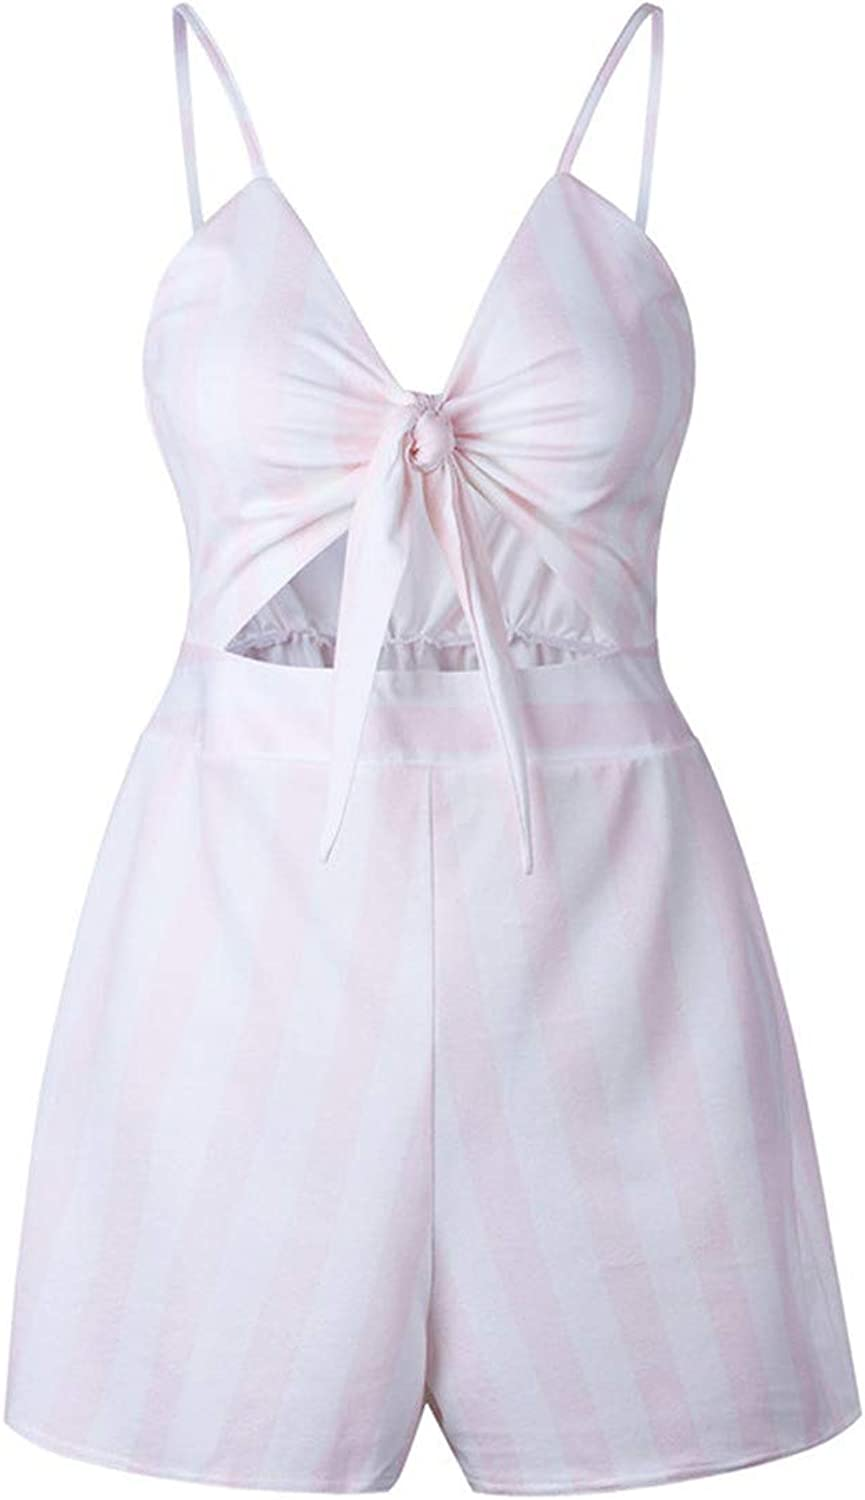 biu-biu jumpsuits-apparel Women Summer Bow Knot Off Shoulder Playsuit Beach Party Sweet Overalls,Pink Stripe,S